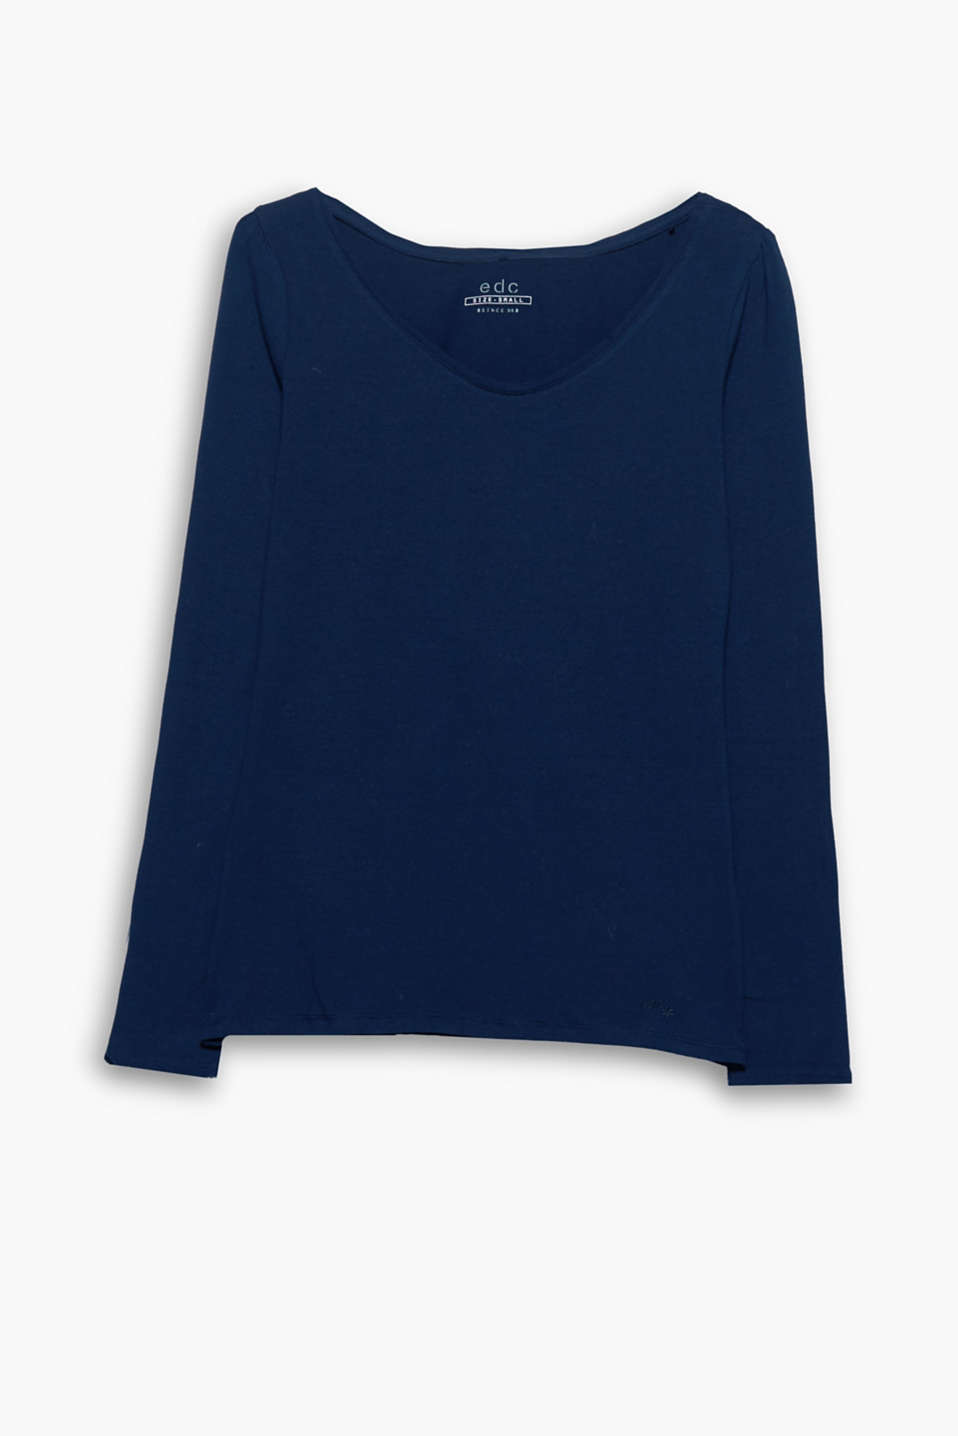 Particularly soft against your skin: long sleeve top made from organic cotton with an added percentage of stretch!